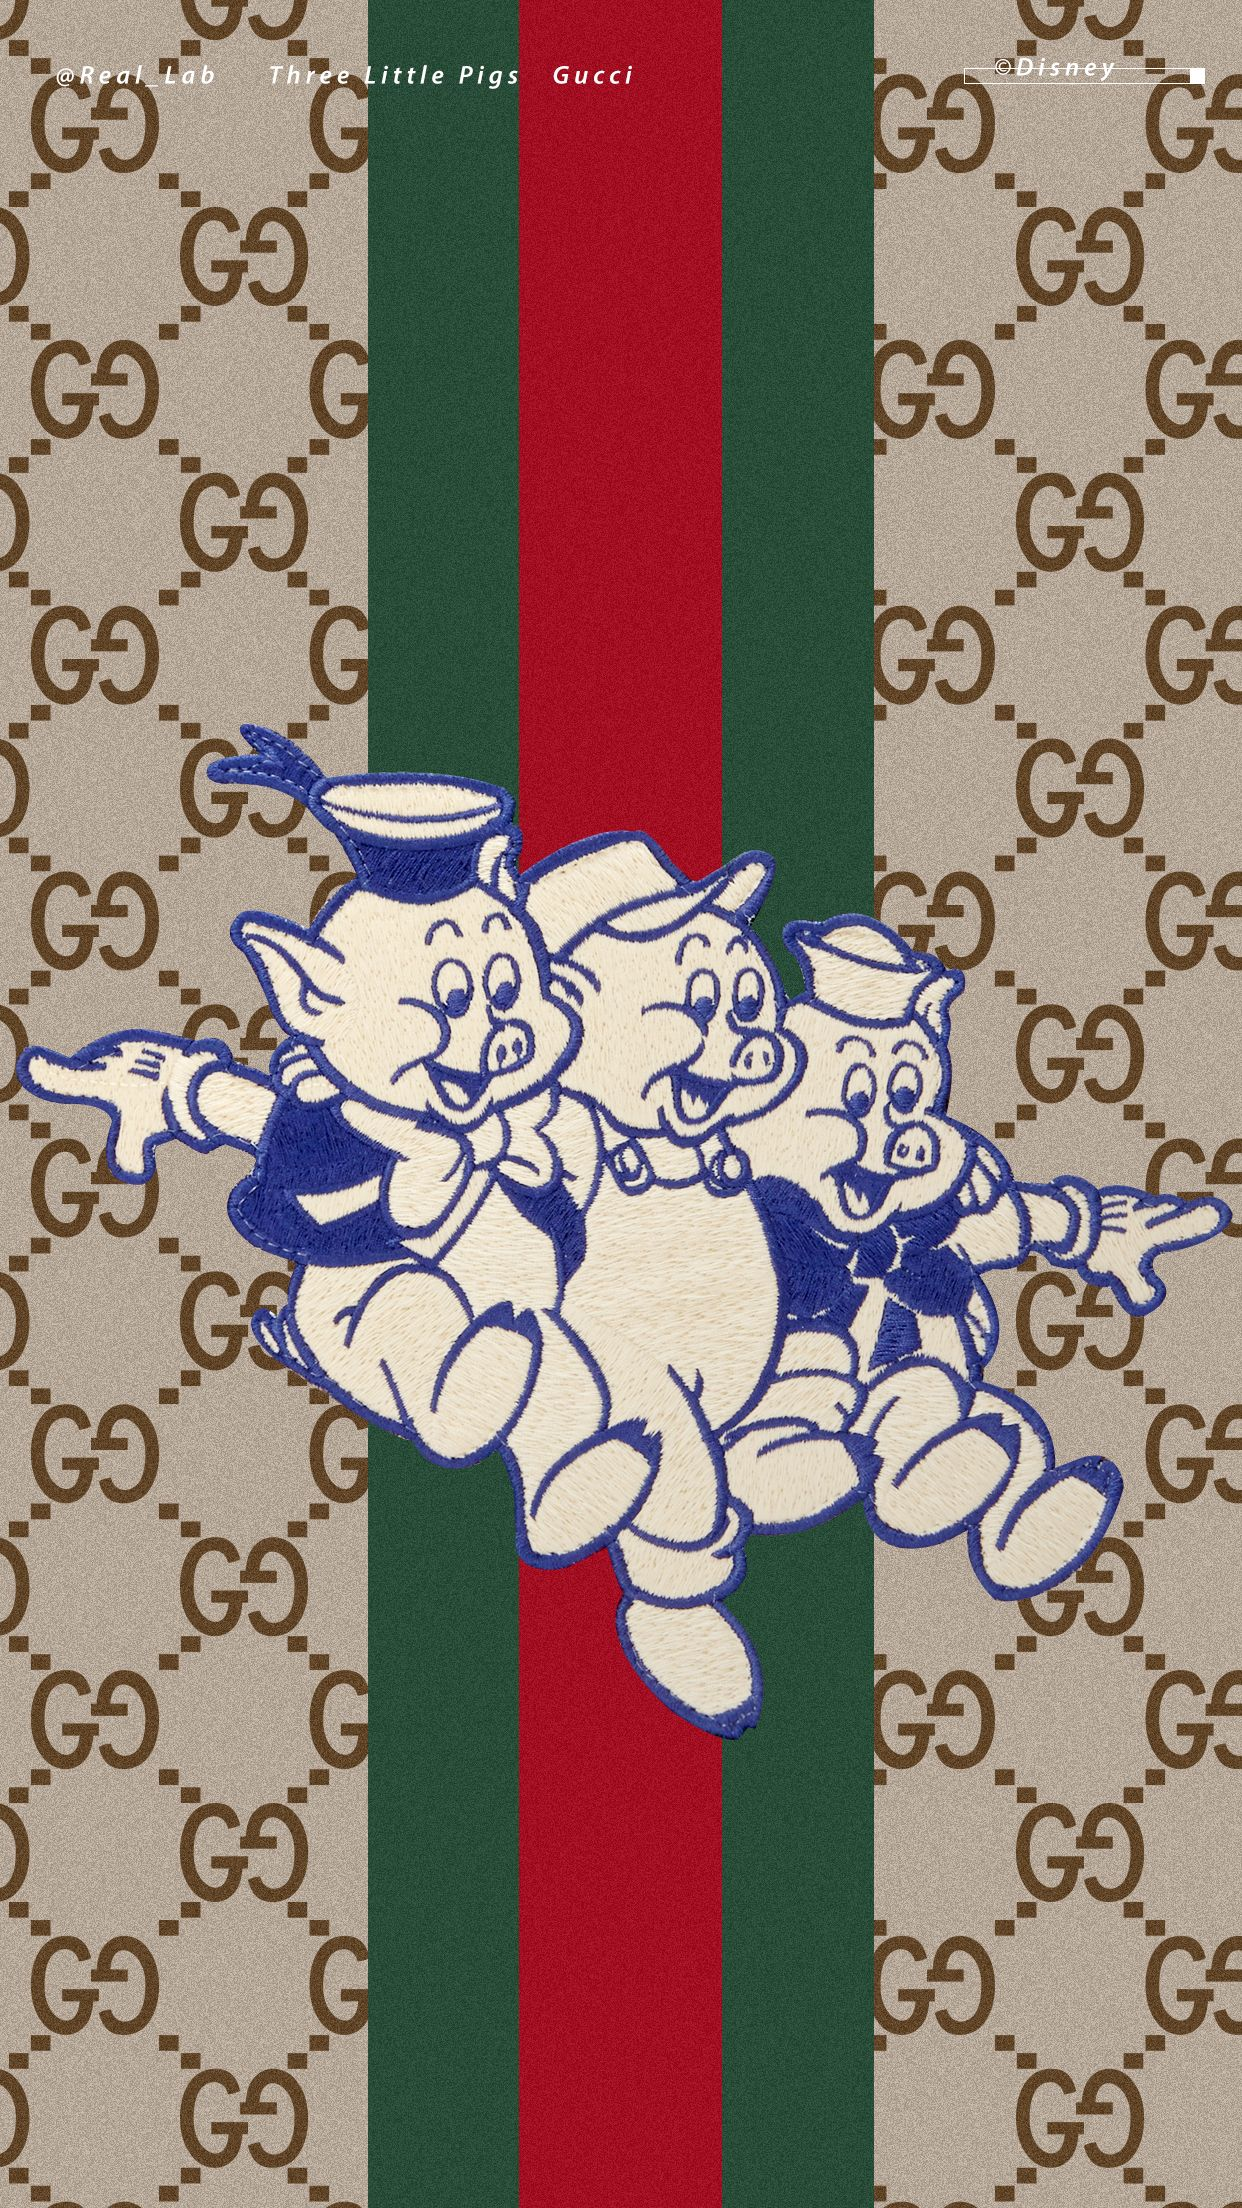 5f8197cf8d7f Pin by Seth Escoto on Gucci pigs and clothes in 2019   Three little ...